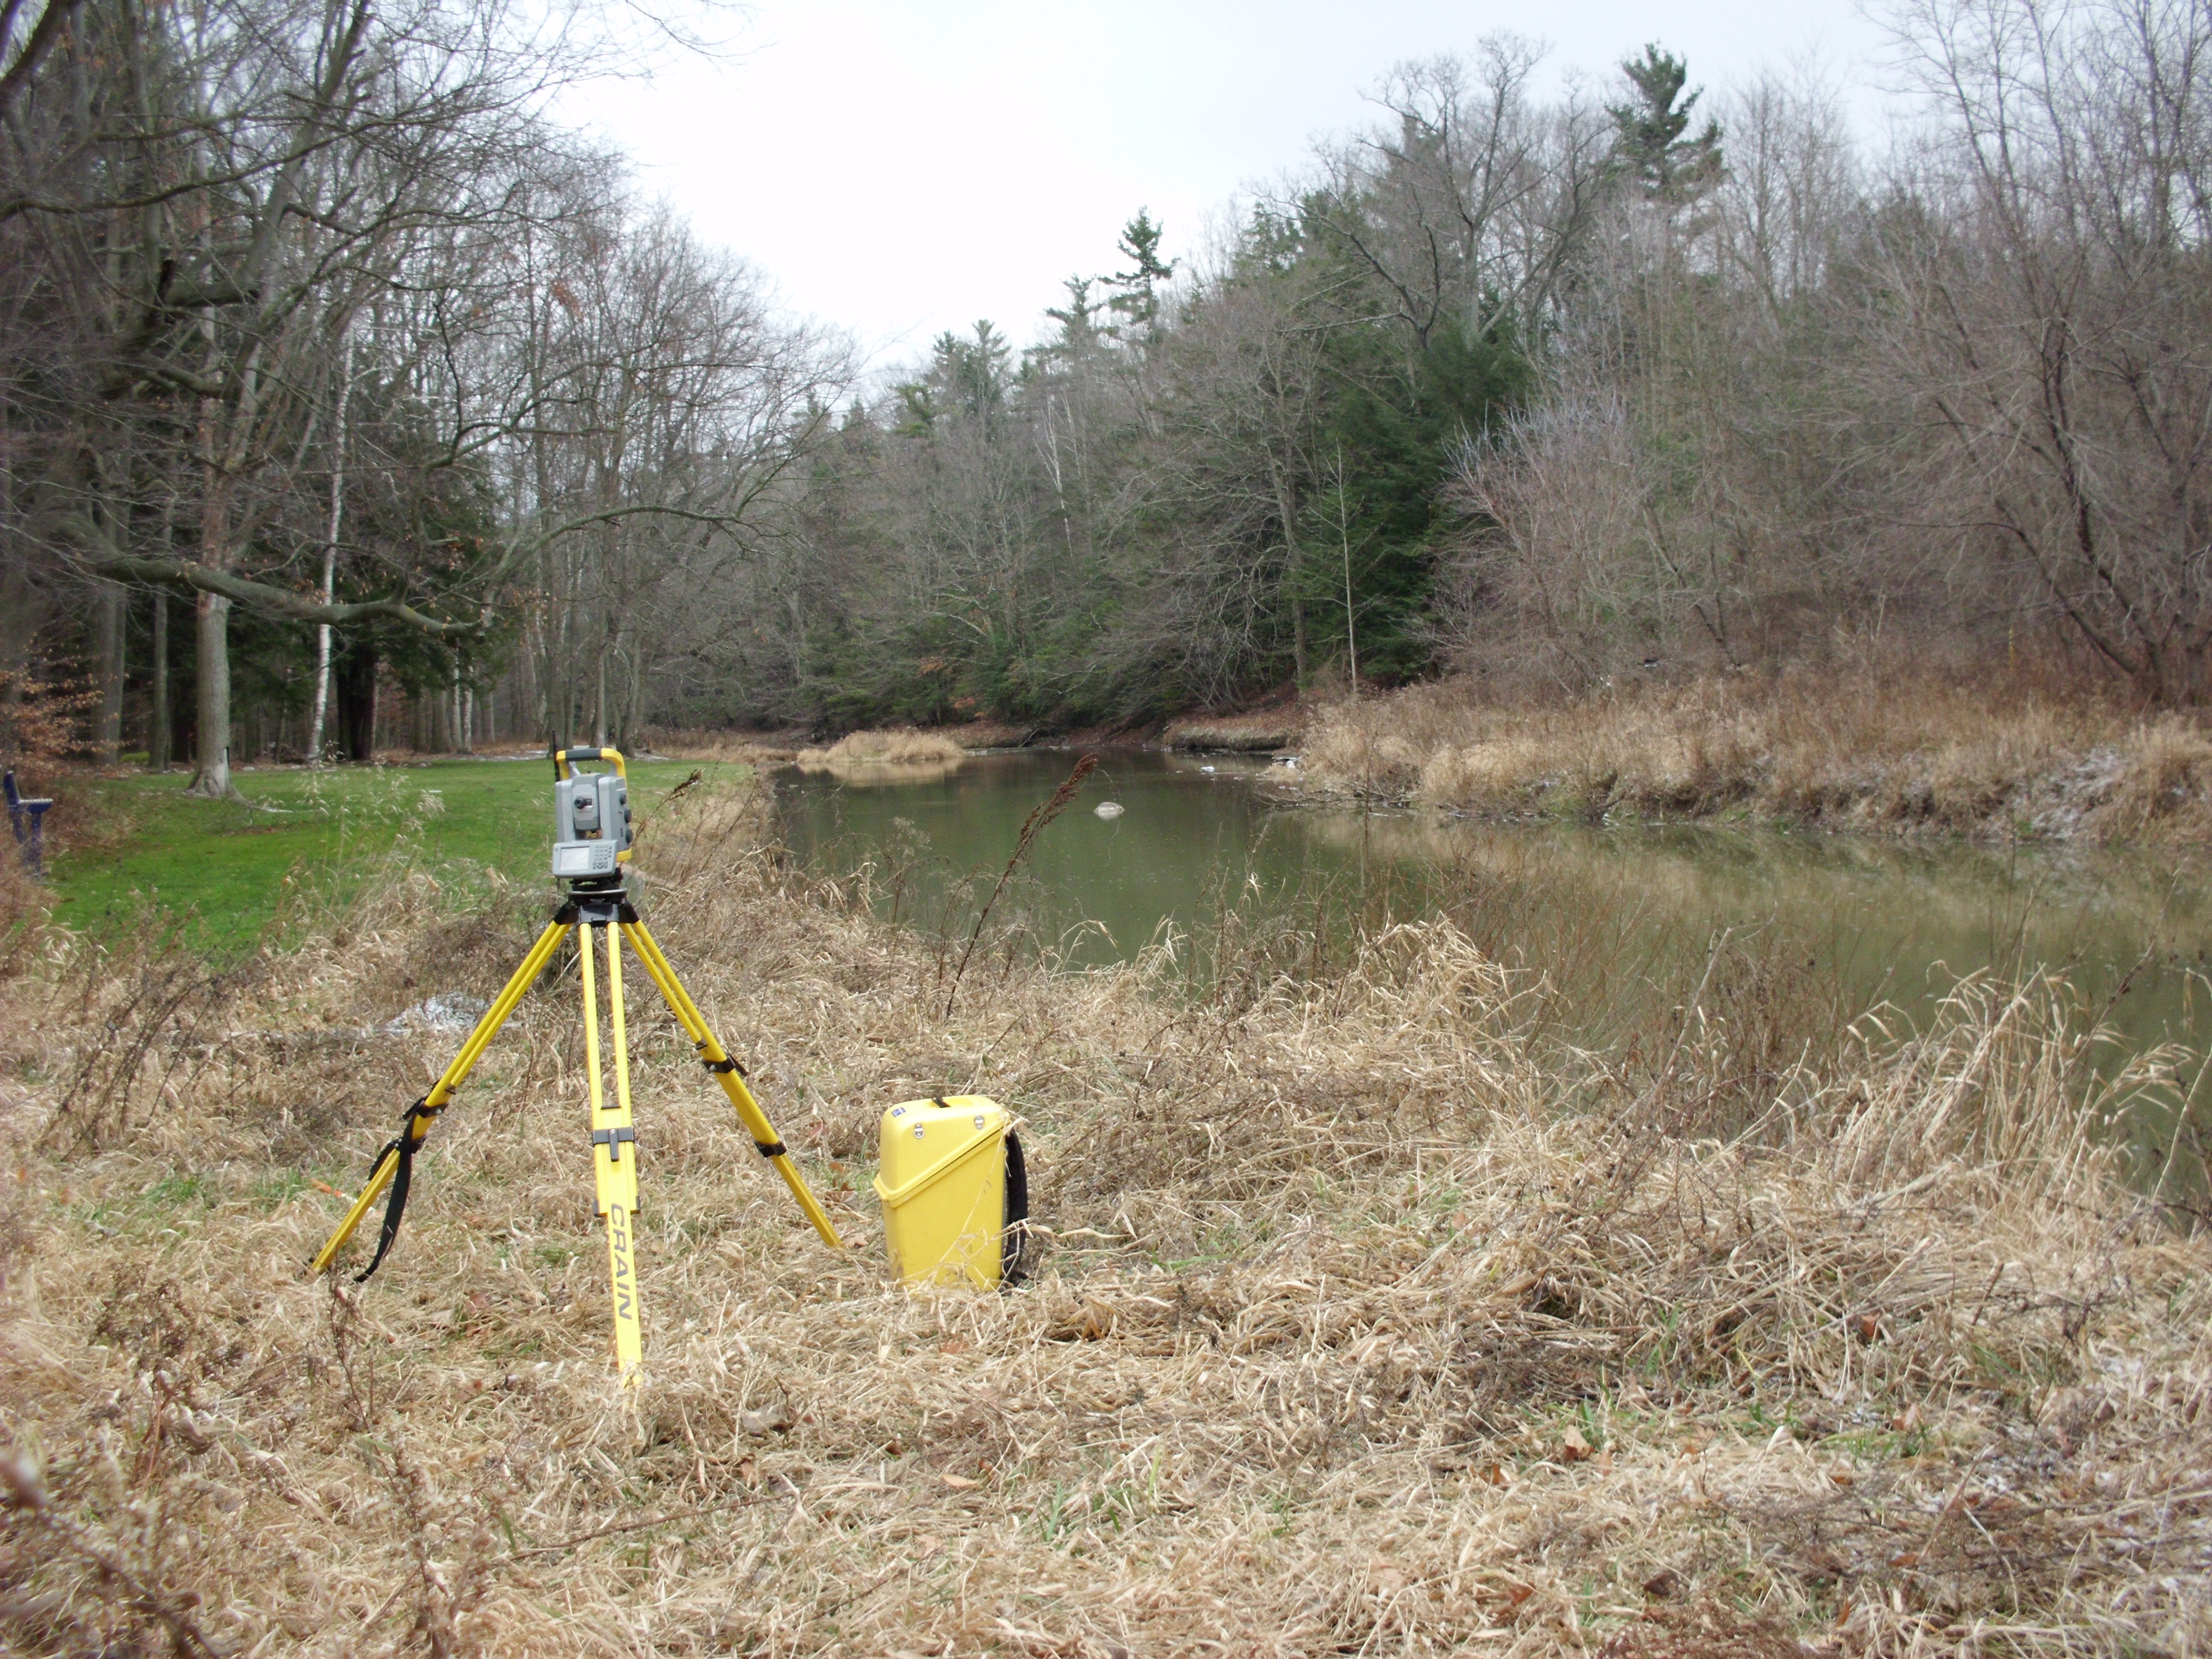 Well-reasoned Boundary Survey? Staking the Deed? What's the